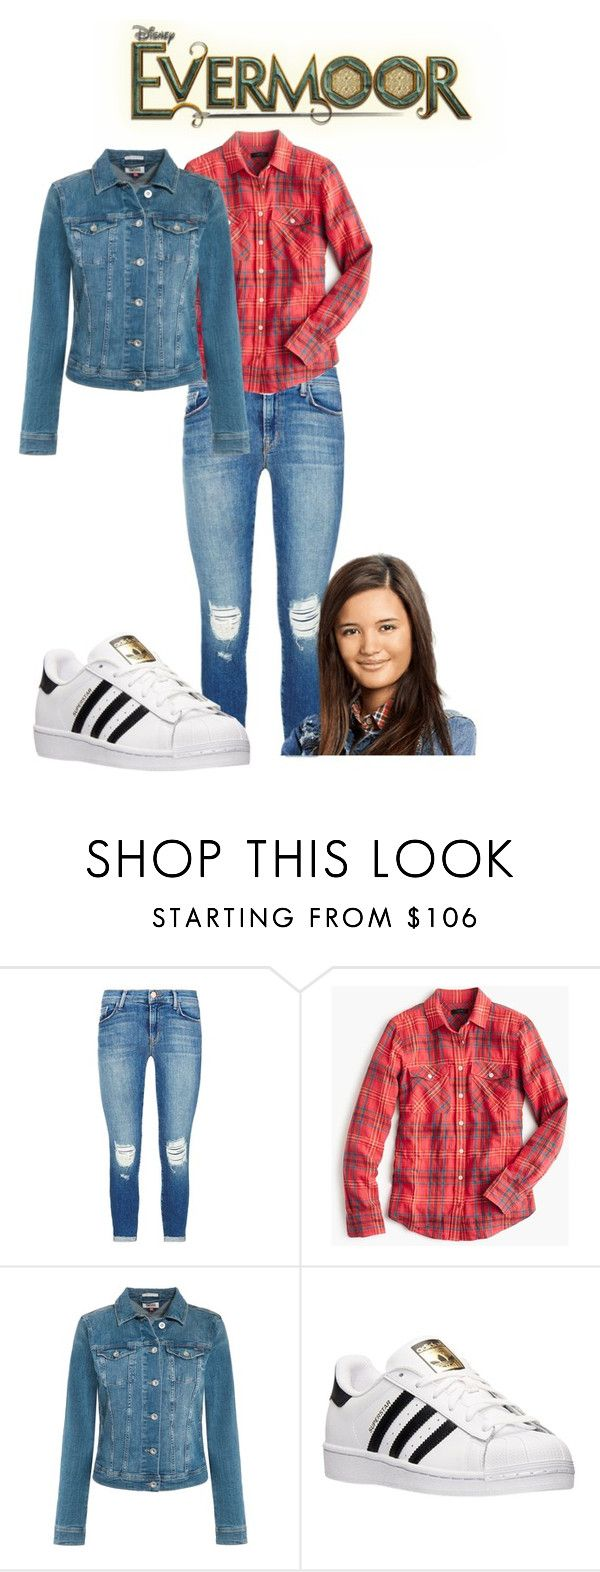 """""""evermoor"""" by maria-look ❤ liked on Polyvore featuring J Brand, J.Crew, Tommy Hilfiger and adidas"""